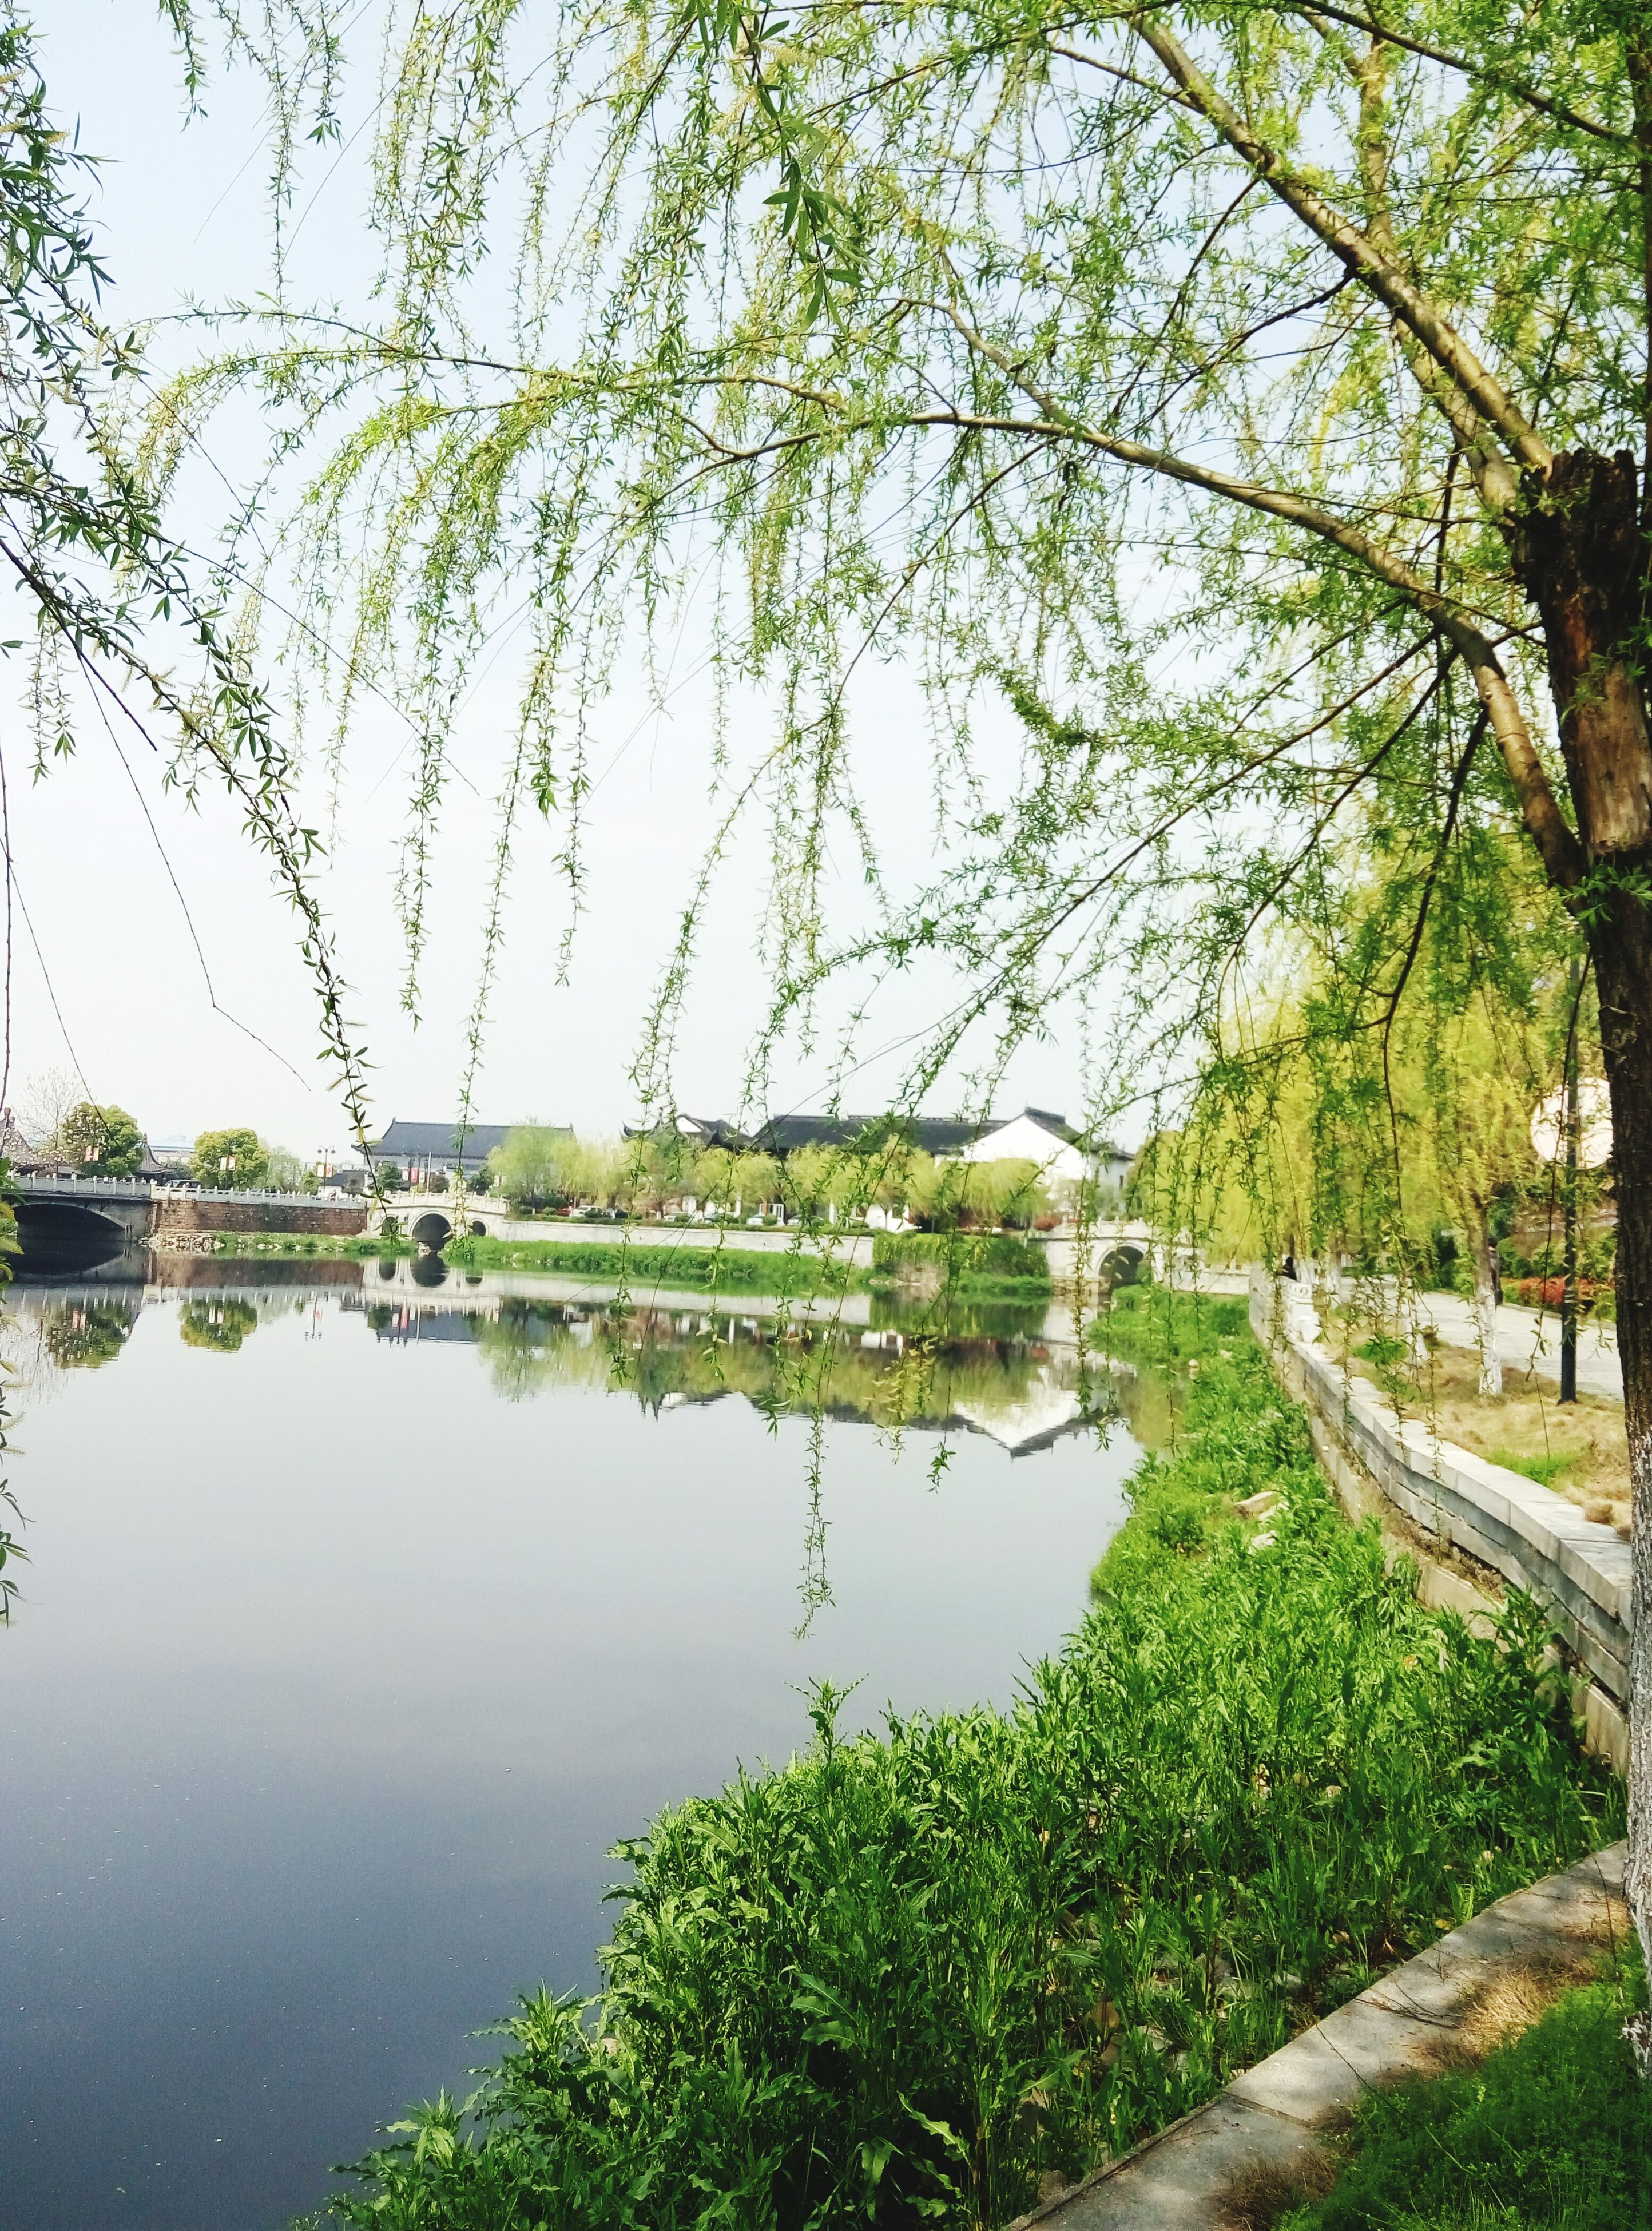 water, tree, reflection, tranquility, lake, green color, growth, tranquil scene, nature, beauty in nature, scenics, river, branch, pond, plant, day, sky, clear sky, outdoors, no people